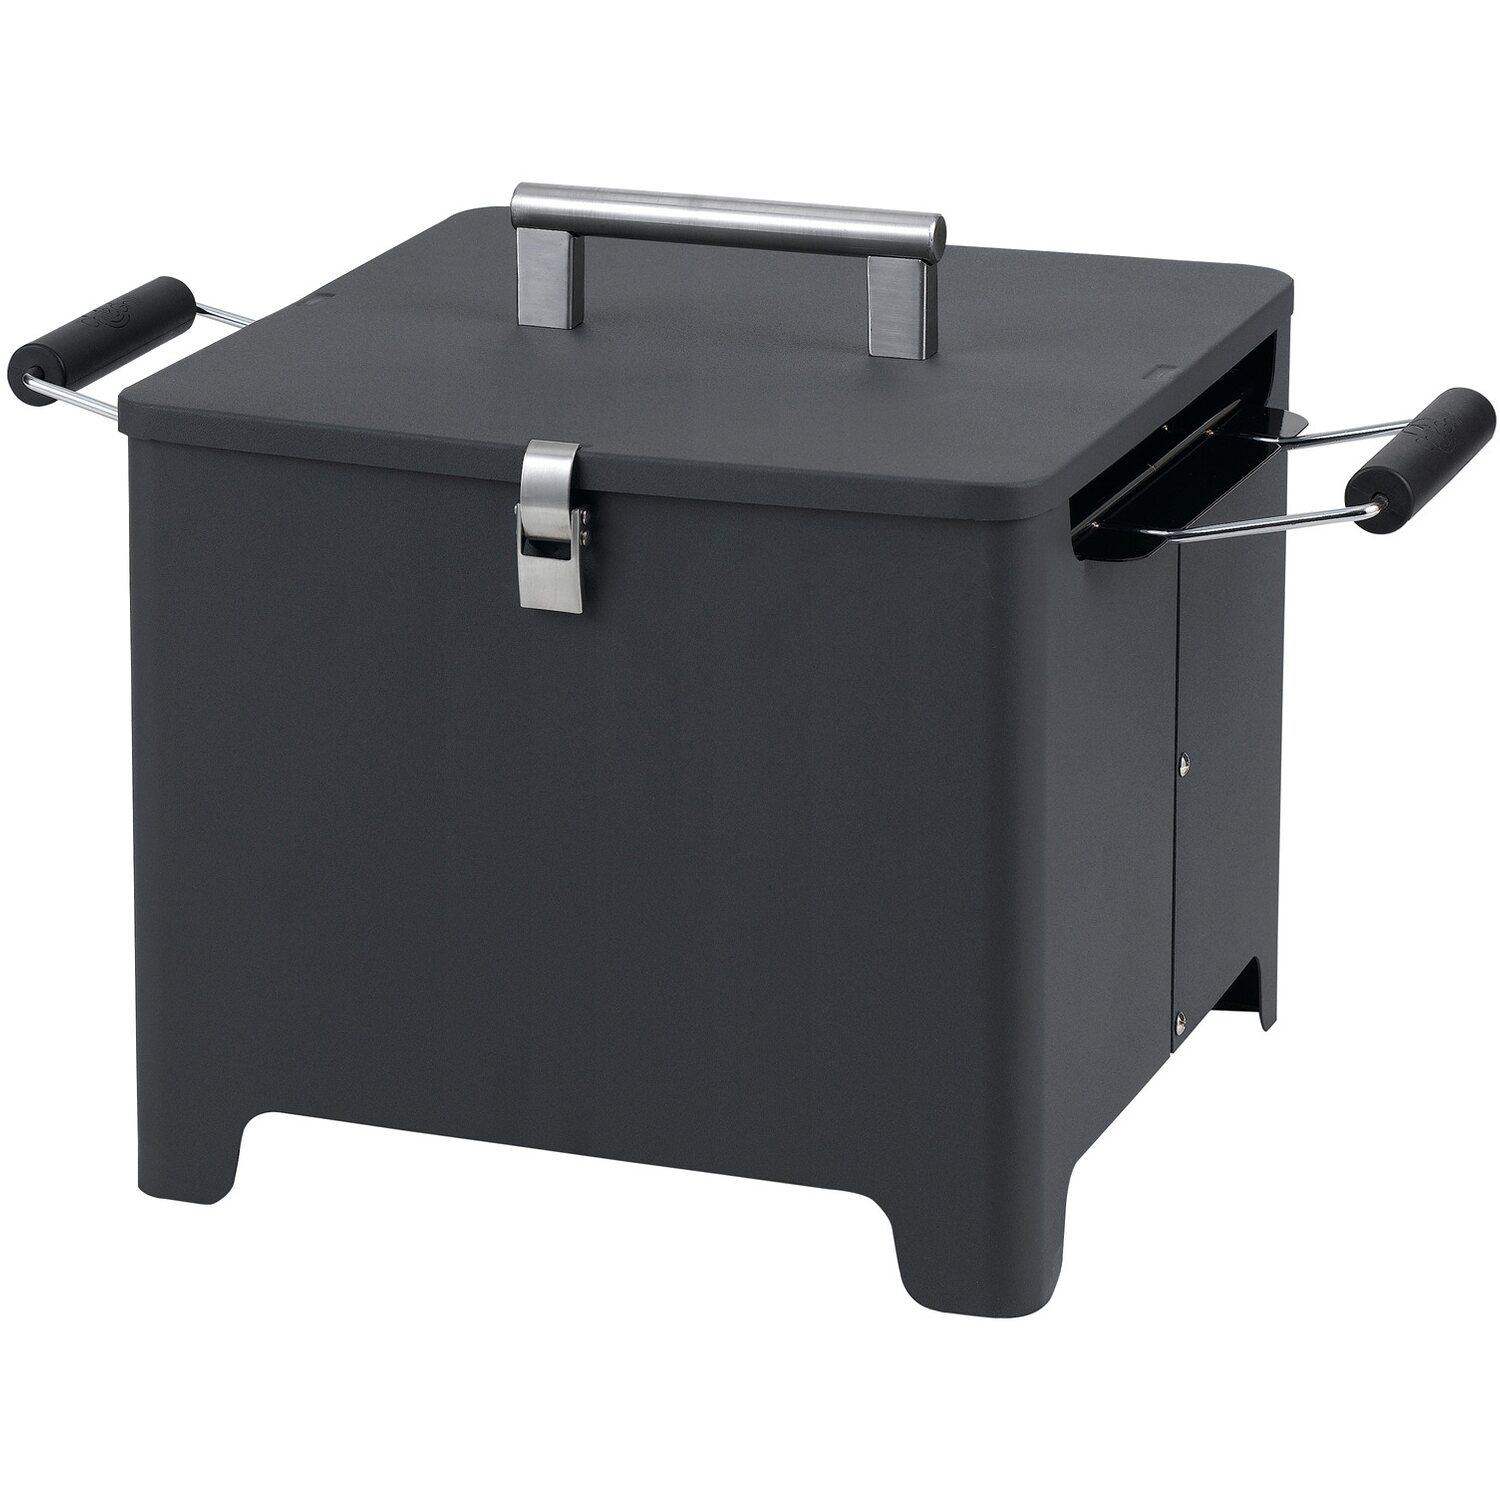 Tepro Chill und Grill Holzkohle-Grill Cube Anthrazit